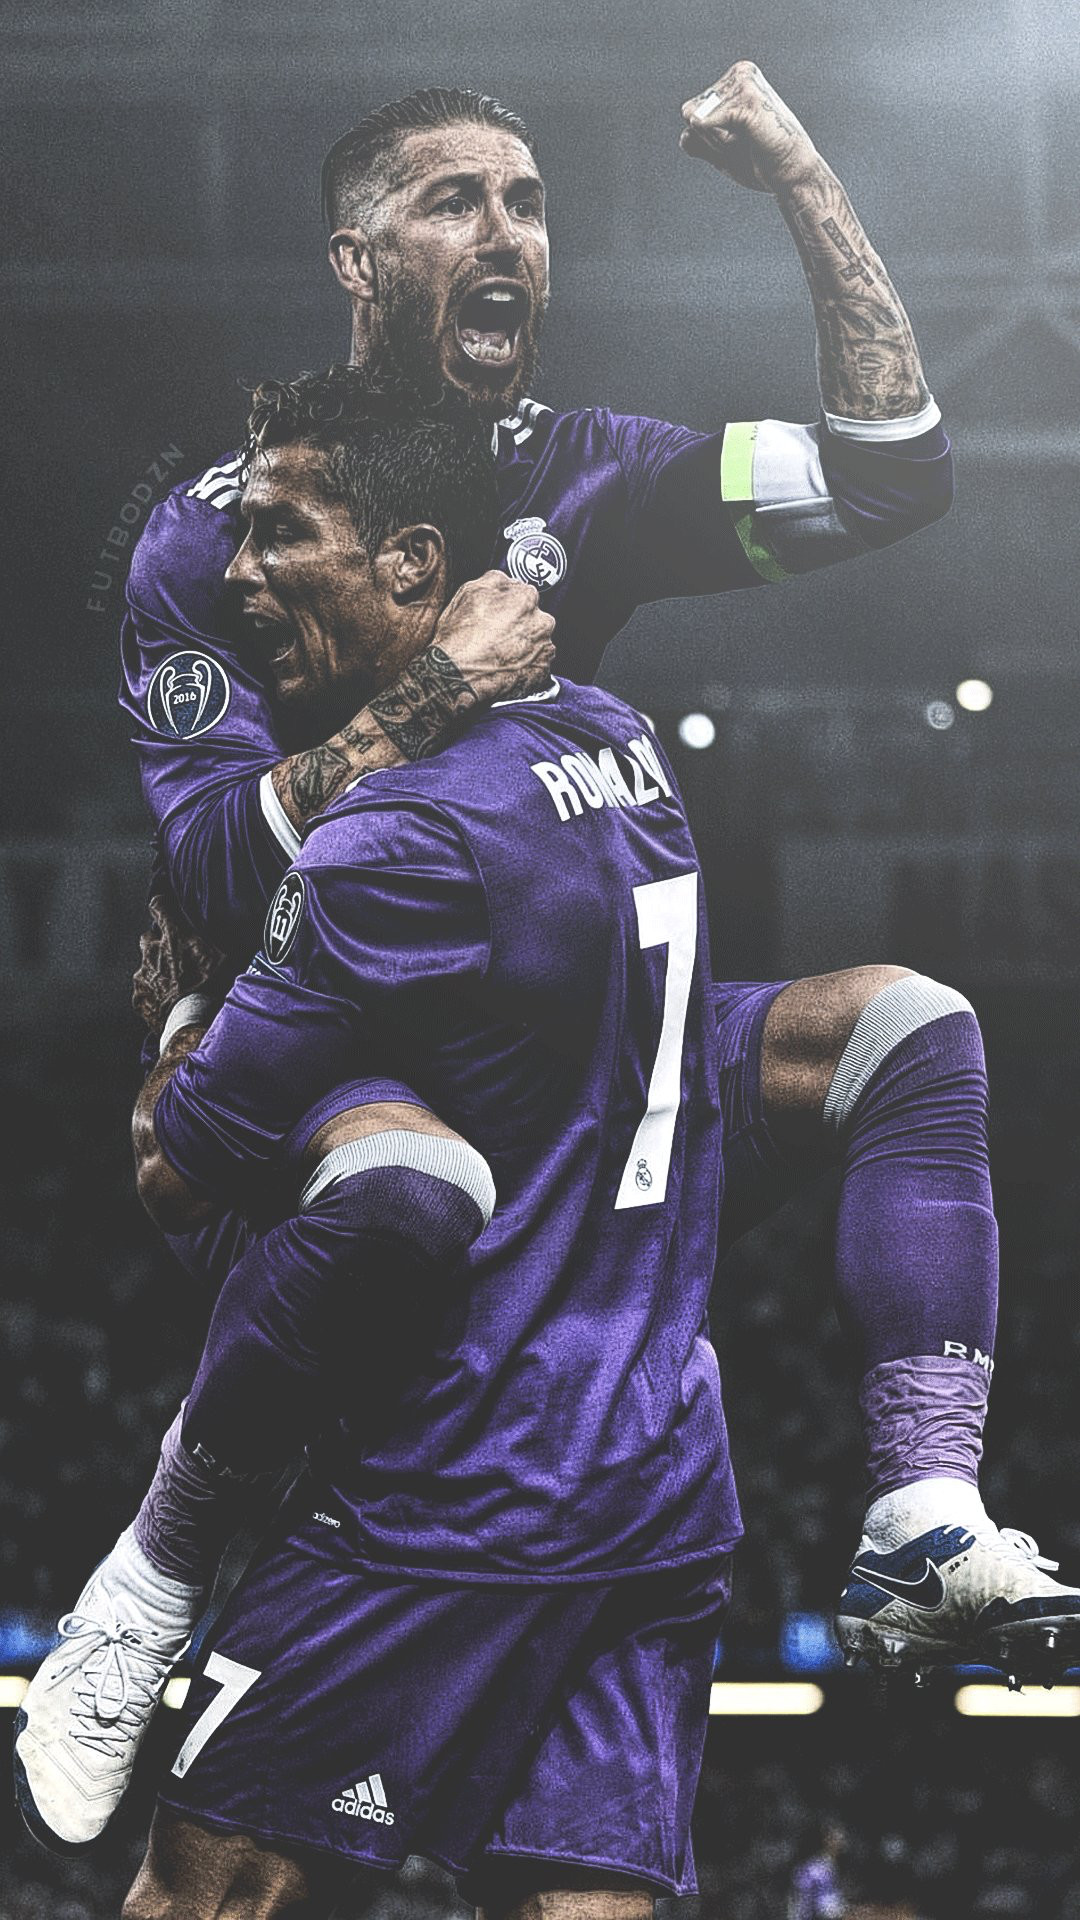 2000x1333 Cristiano Ronaldo HD Wallpapers Fifa World Cup 2014 Download 1920x1080 Real Madrid